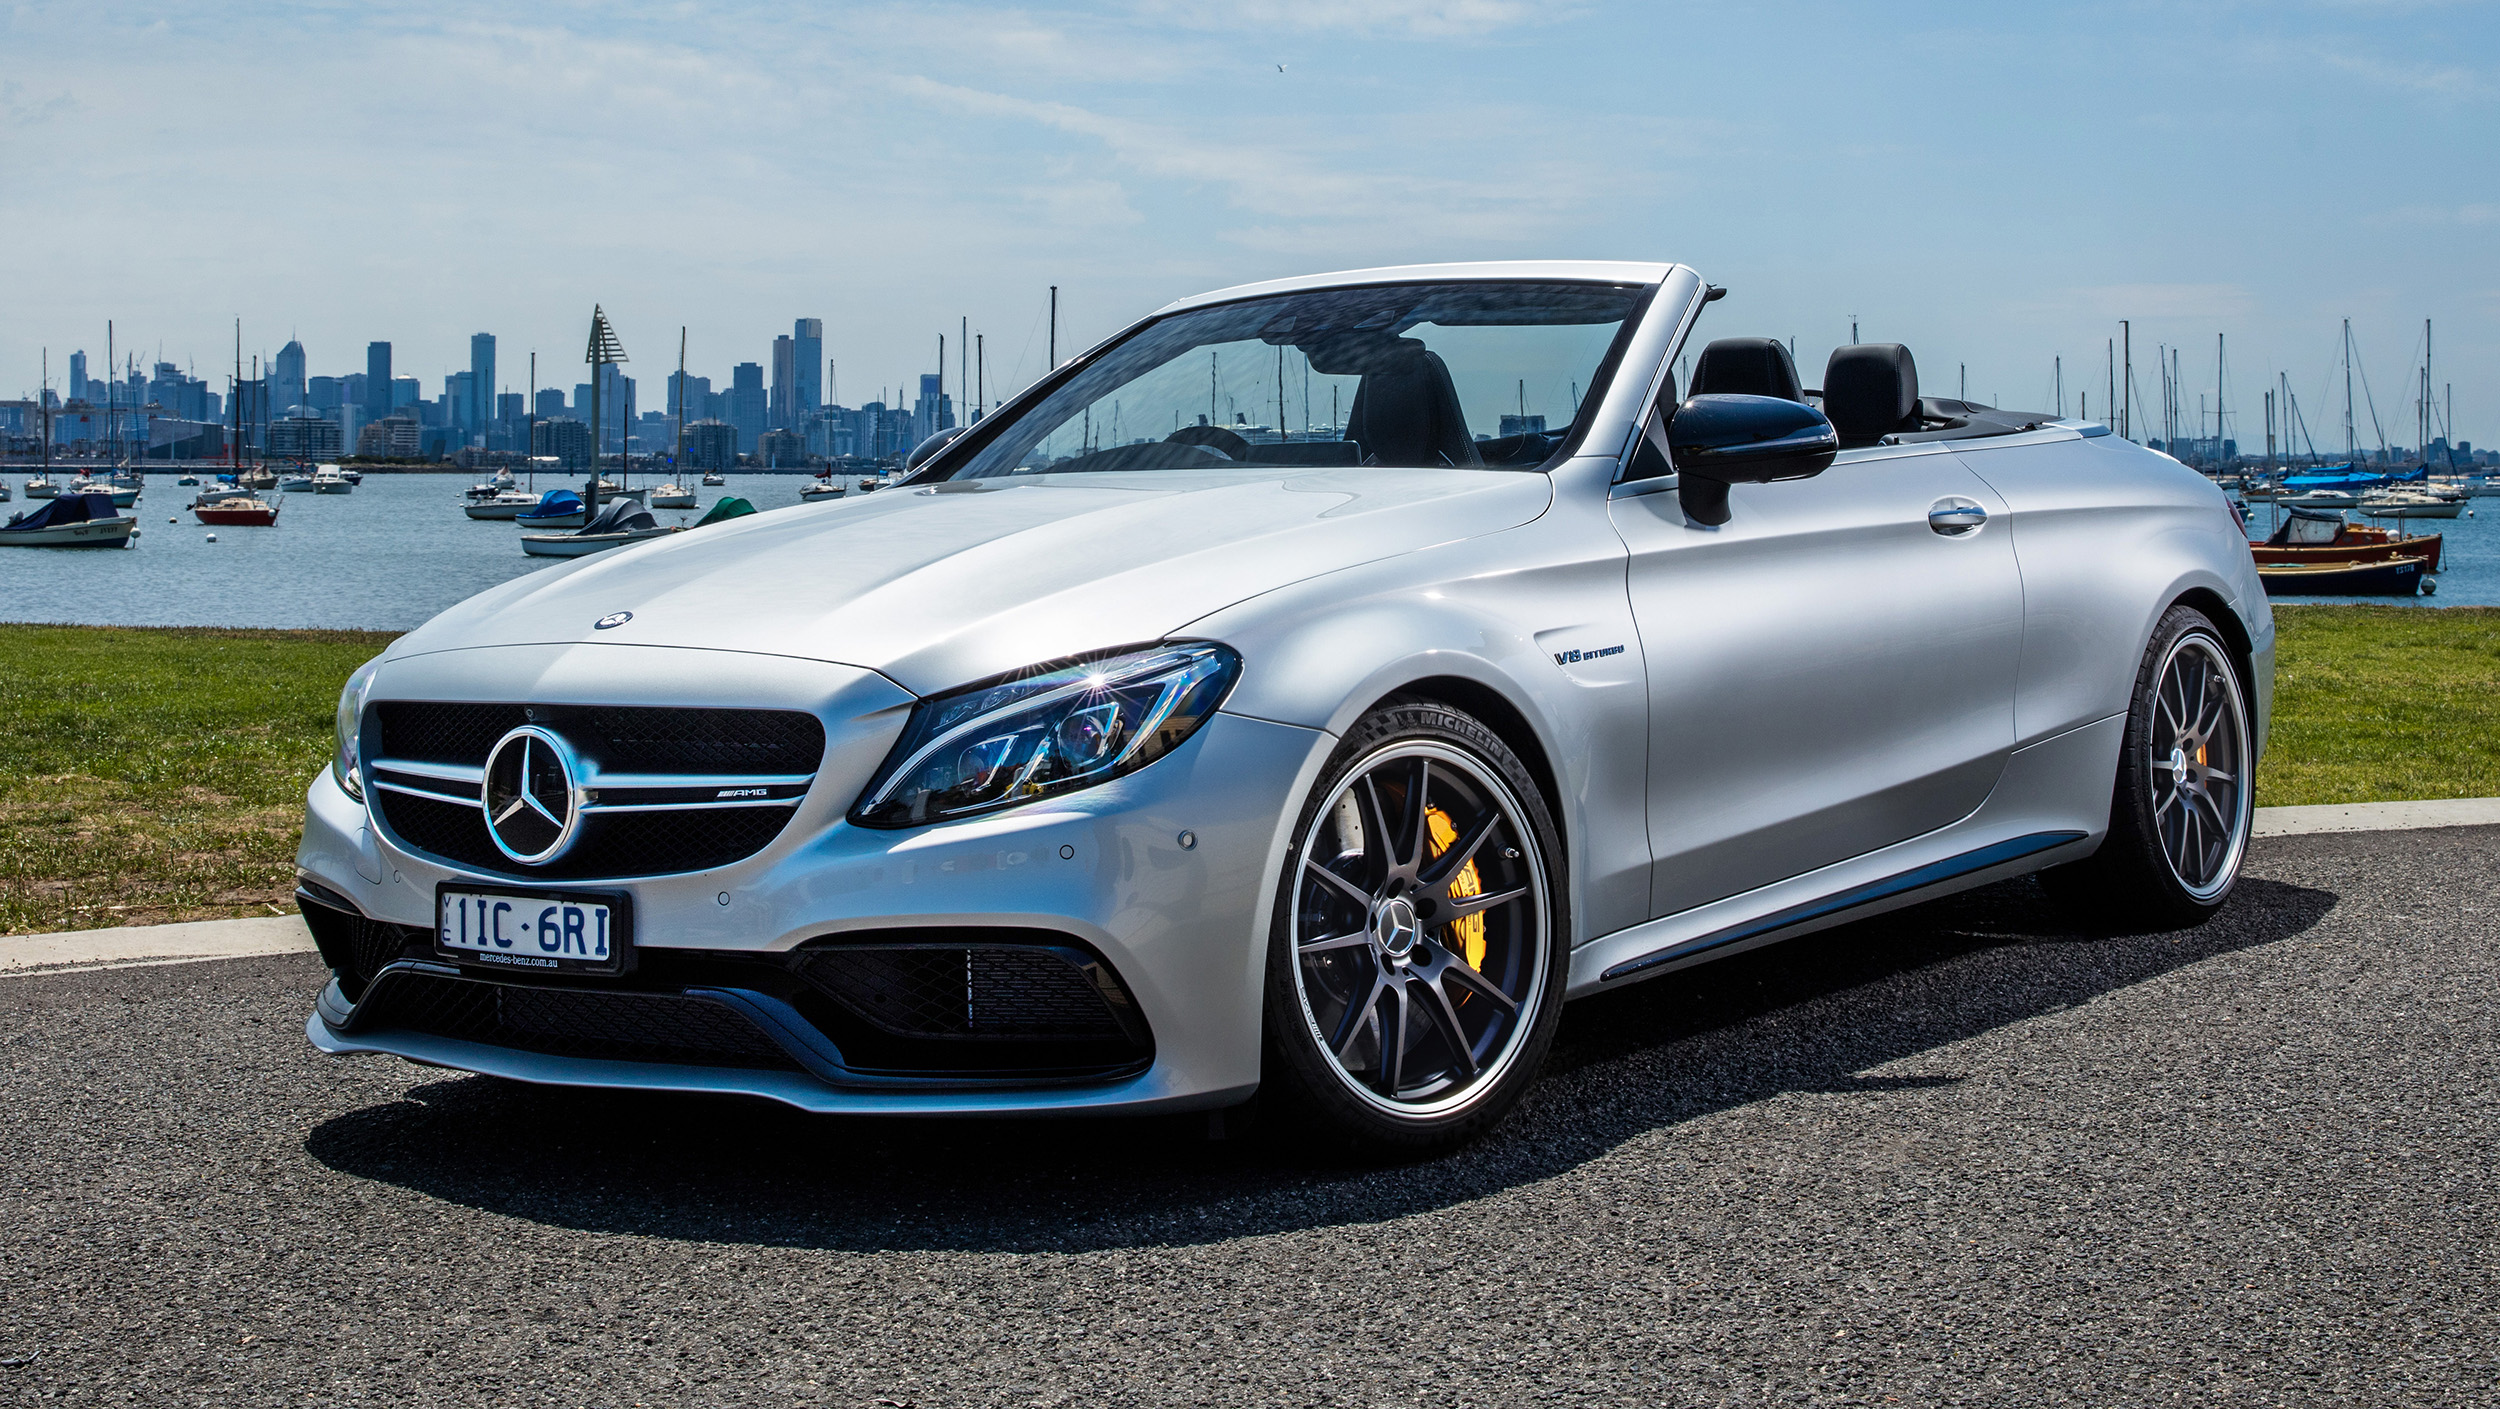 2017 Mercedes-AMG C63 S Cabriolet review | CarAdvice